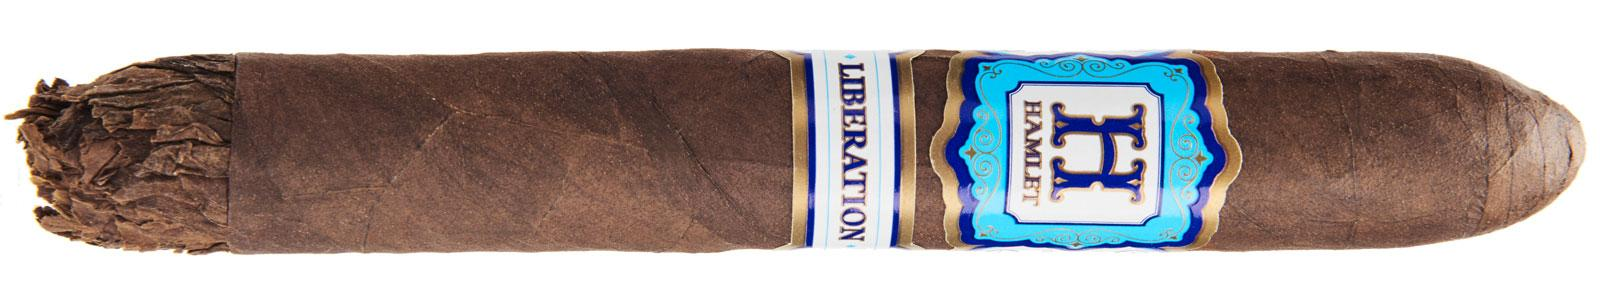 Hamlet Paredes's third cigar with Rocky Patel features a pronounced shaggy foot.